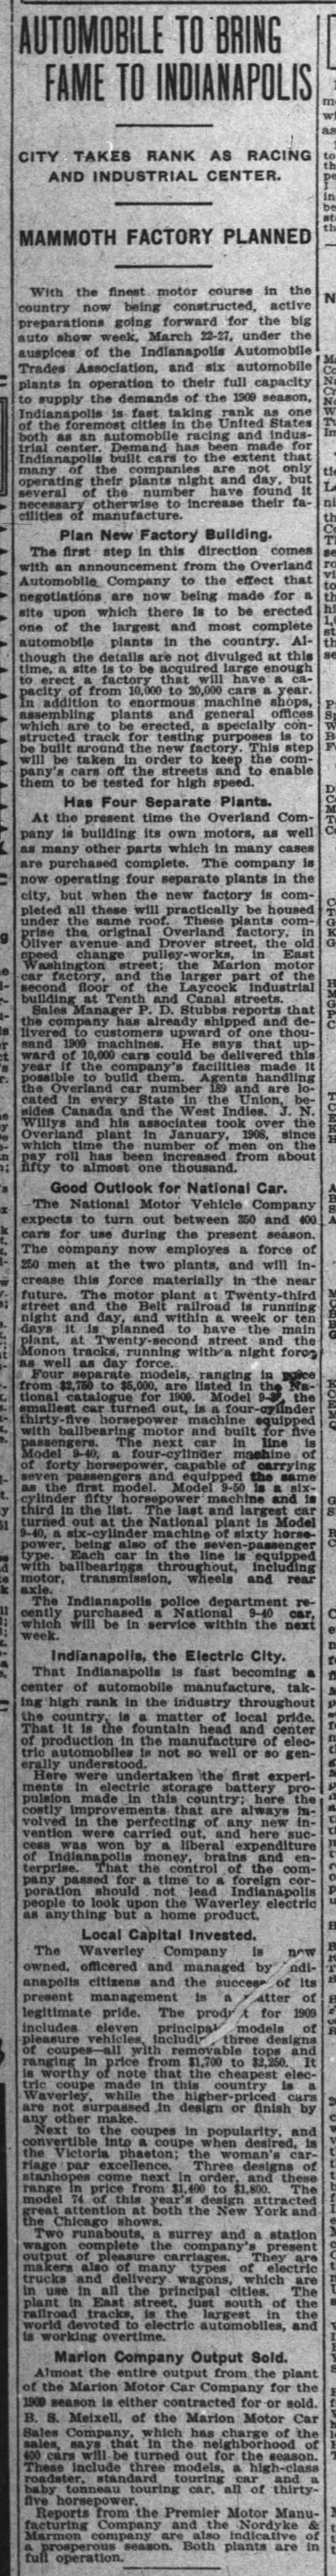 Automobile Industry Indianapolis Feb 1909 -